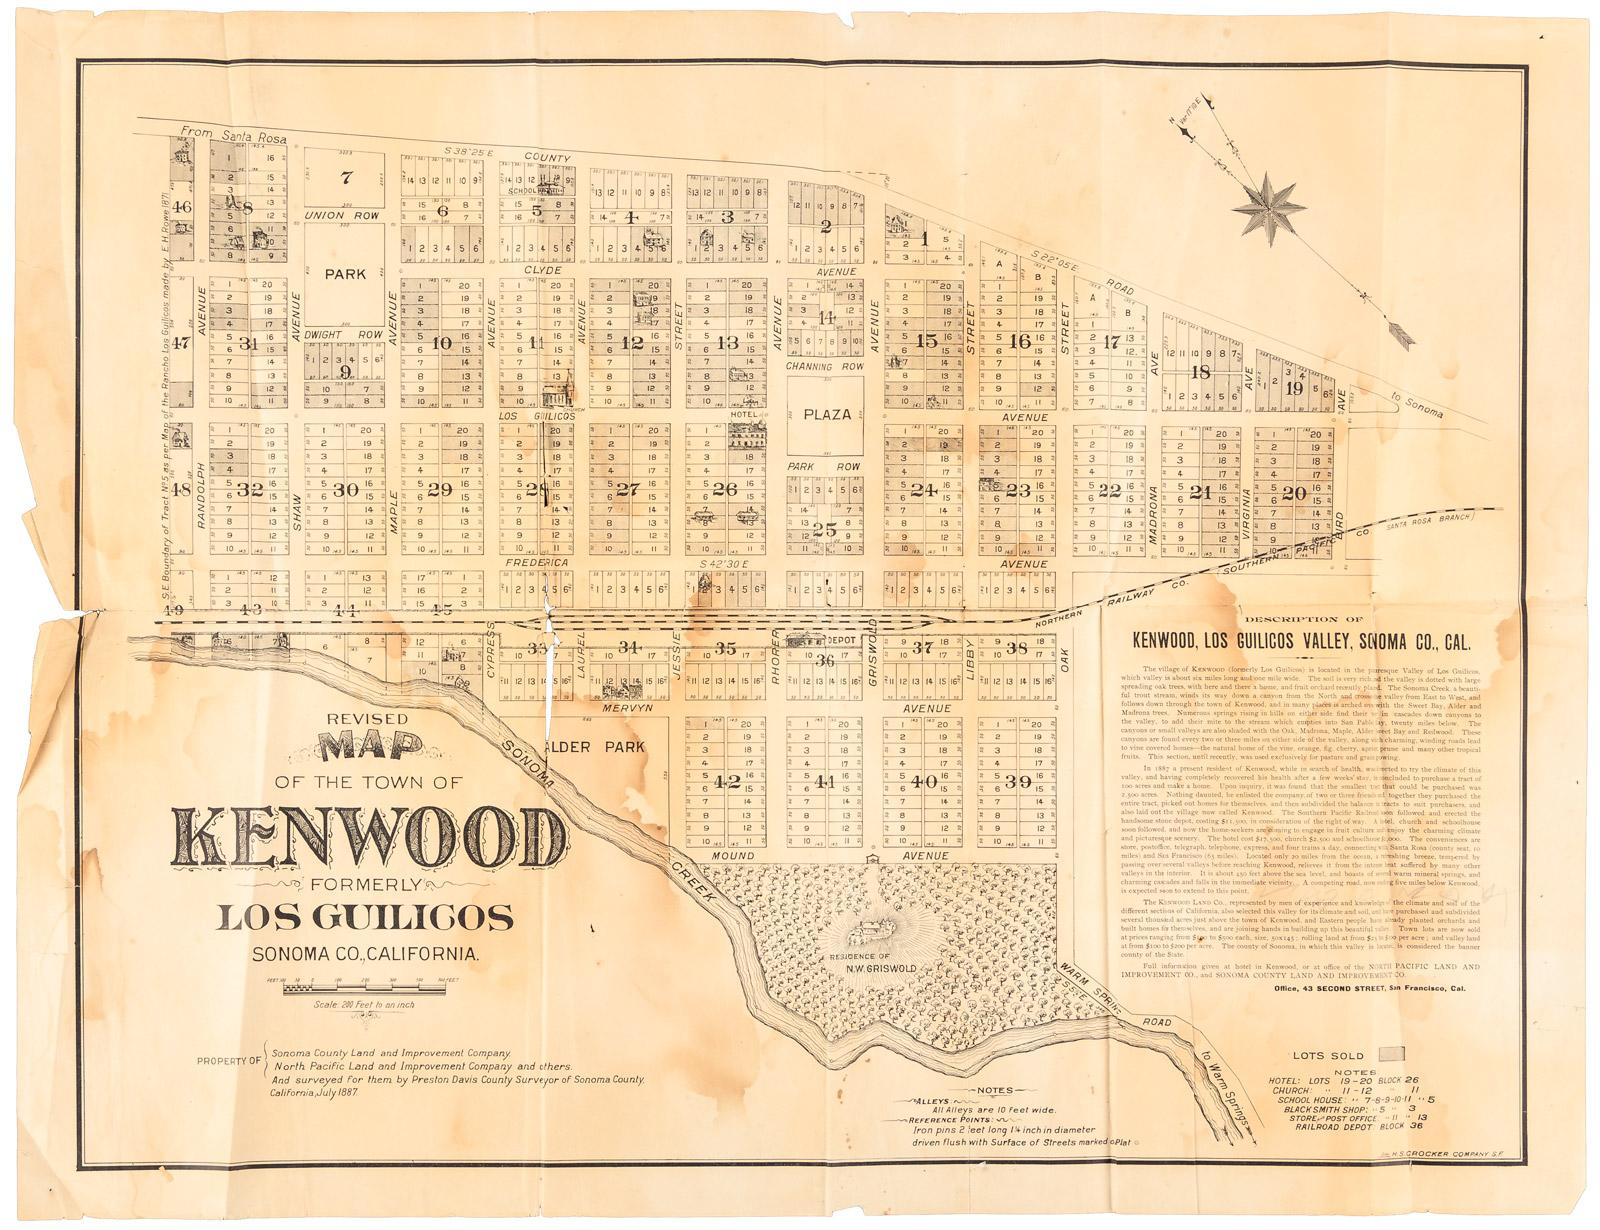 Revised Map Of The Town Of Kenwood Formerly Los Guilicos Sonoma Co